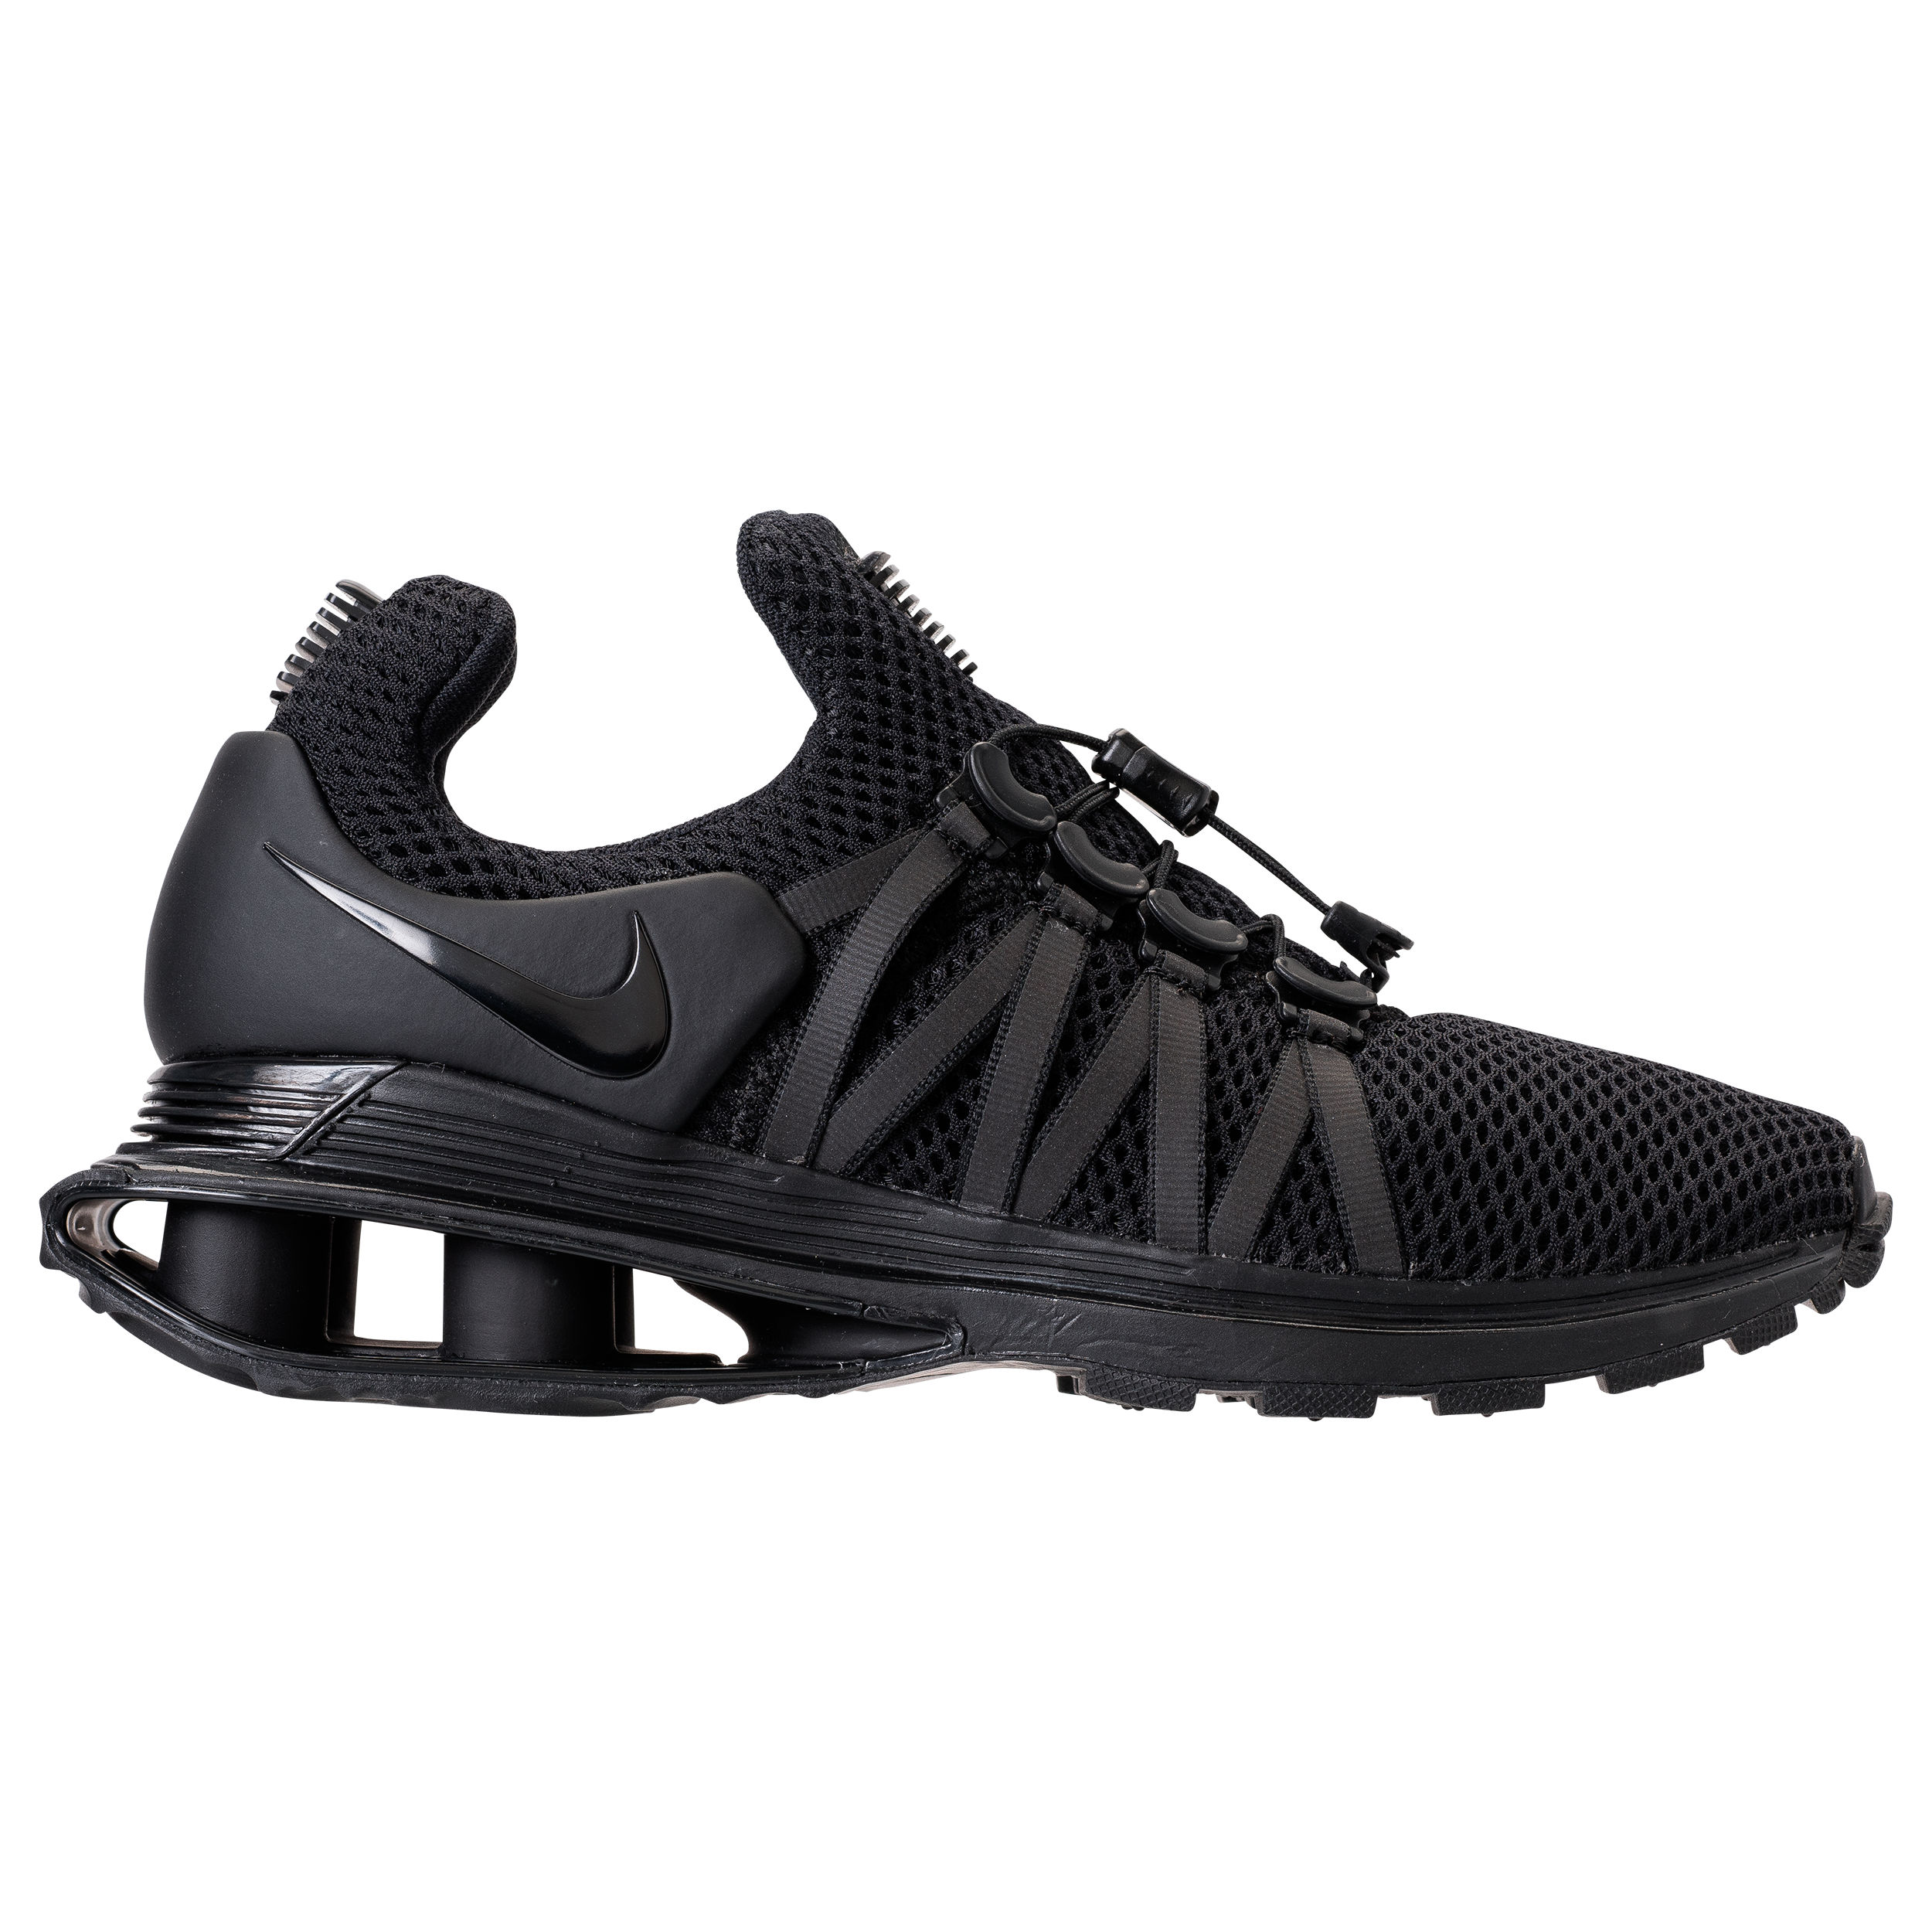 d813bf2af99 Two New Women s Colorways of the Nike Shox Gravity Drop at Eastbay ...